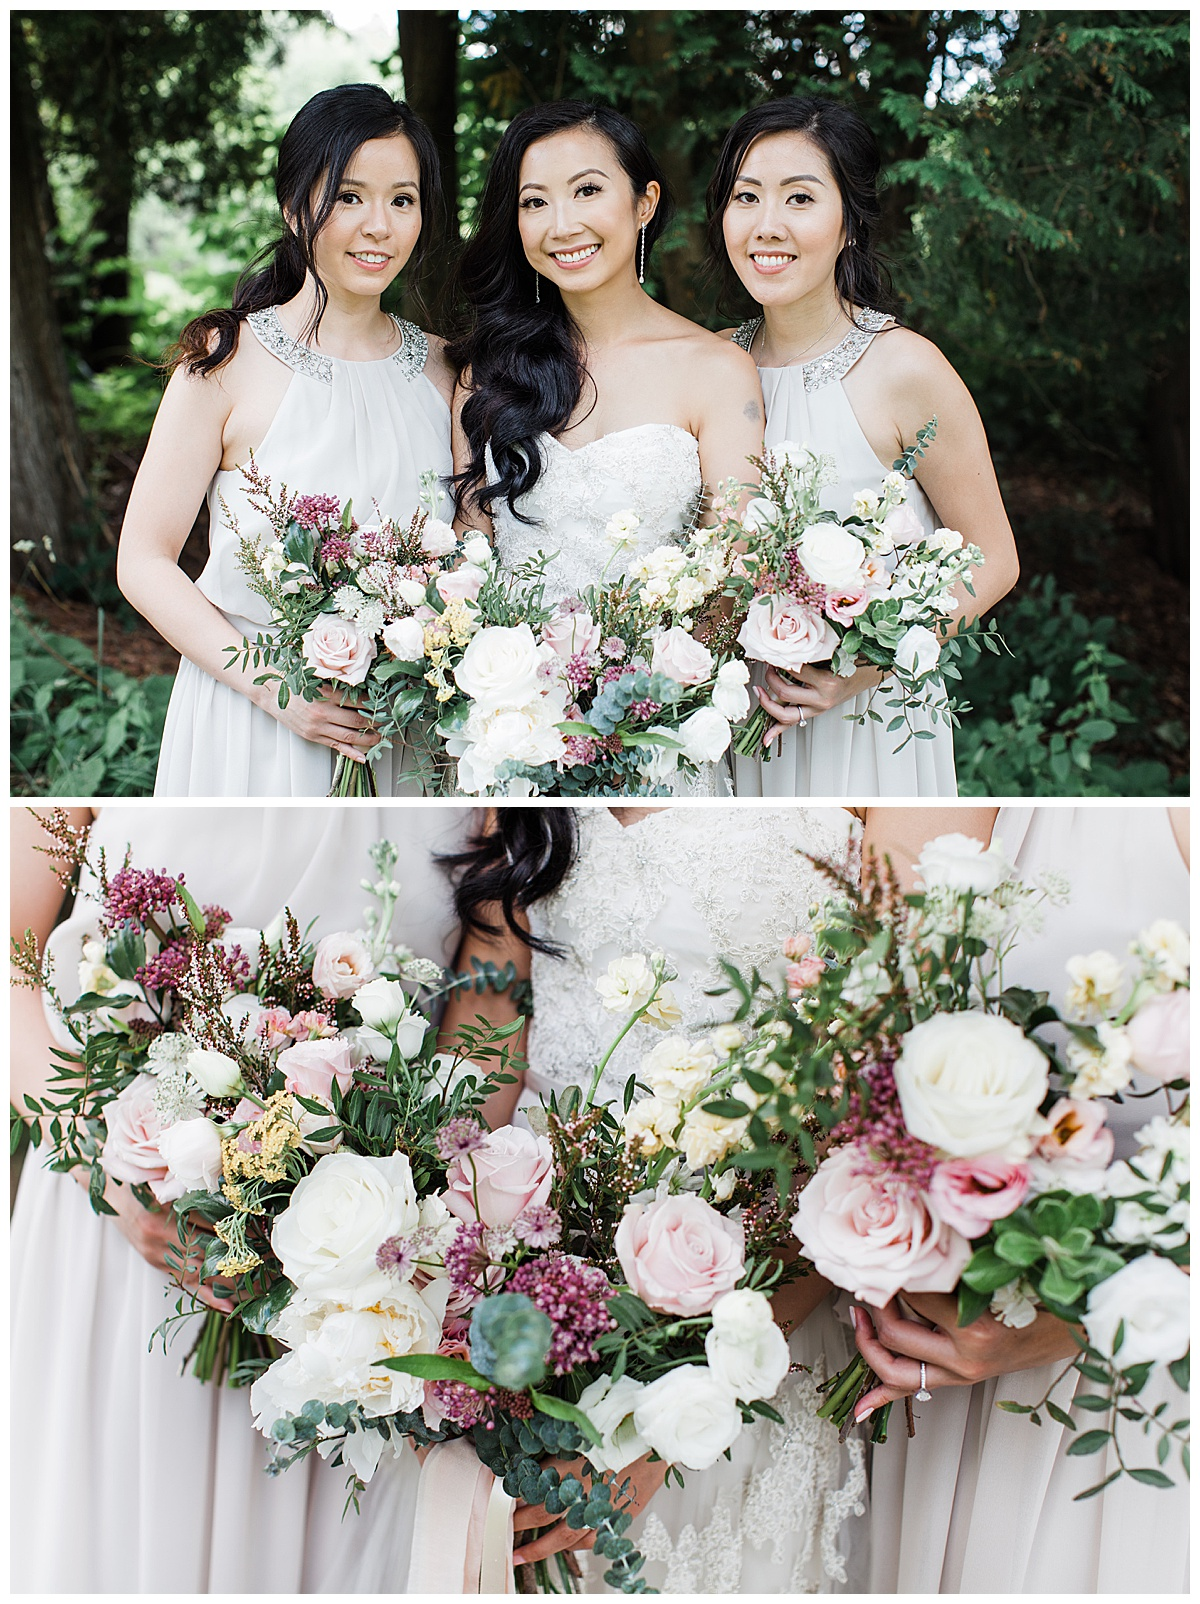 Bridal party portrait and bridesmaids bouquets| bridal bouquet pink white and green| Toronto photographer| 3photography